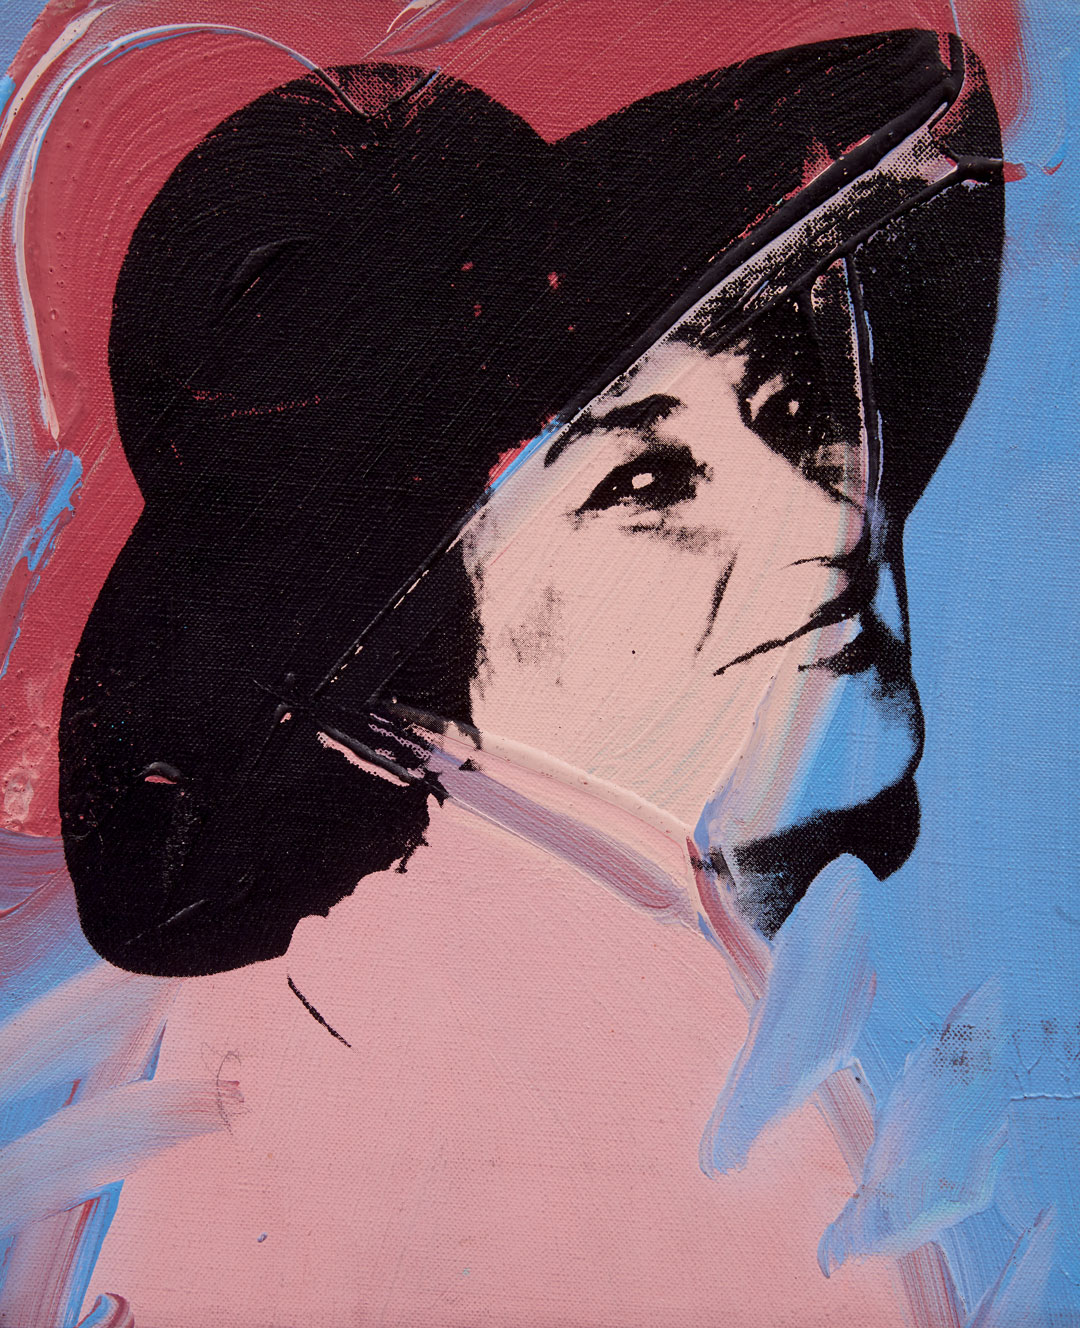 Andy Warhol, Bella Abzug, summer 1977, acrylic and silkscreen ink on linen, 12 x 10 inches, 30.5 x 25.4 cm. Picture credit: Private Collection © The Andy Warhol Foundation for the Visual Arts, Inc., NY Photo by Jordan Tinker